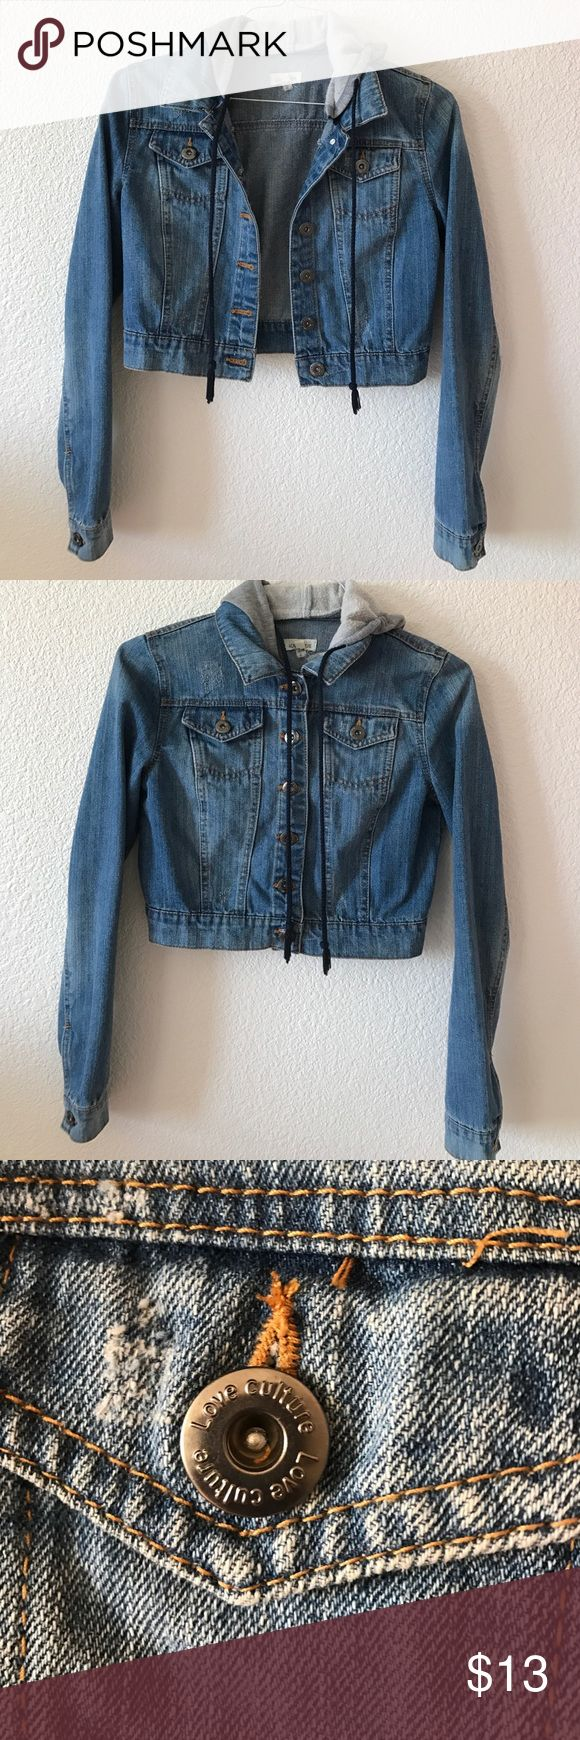 """Hooded Jean Jacket """"Crop top"""" Jacket • Light gray hood with navy blue strings • Has the """"scuff"""" look, shown mainly on the back and some on the front • Dark silver buttons Love Culture Jackets & Coats Jean Jackets"""